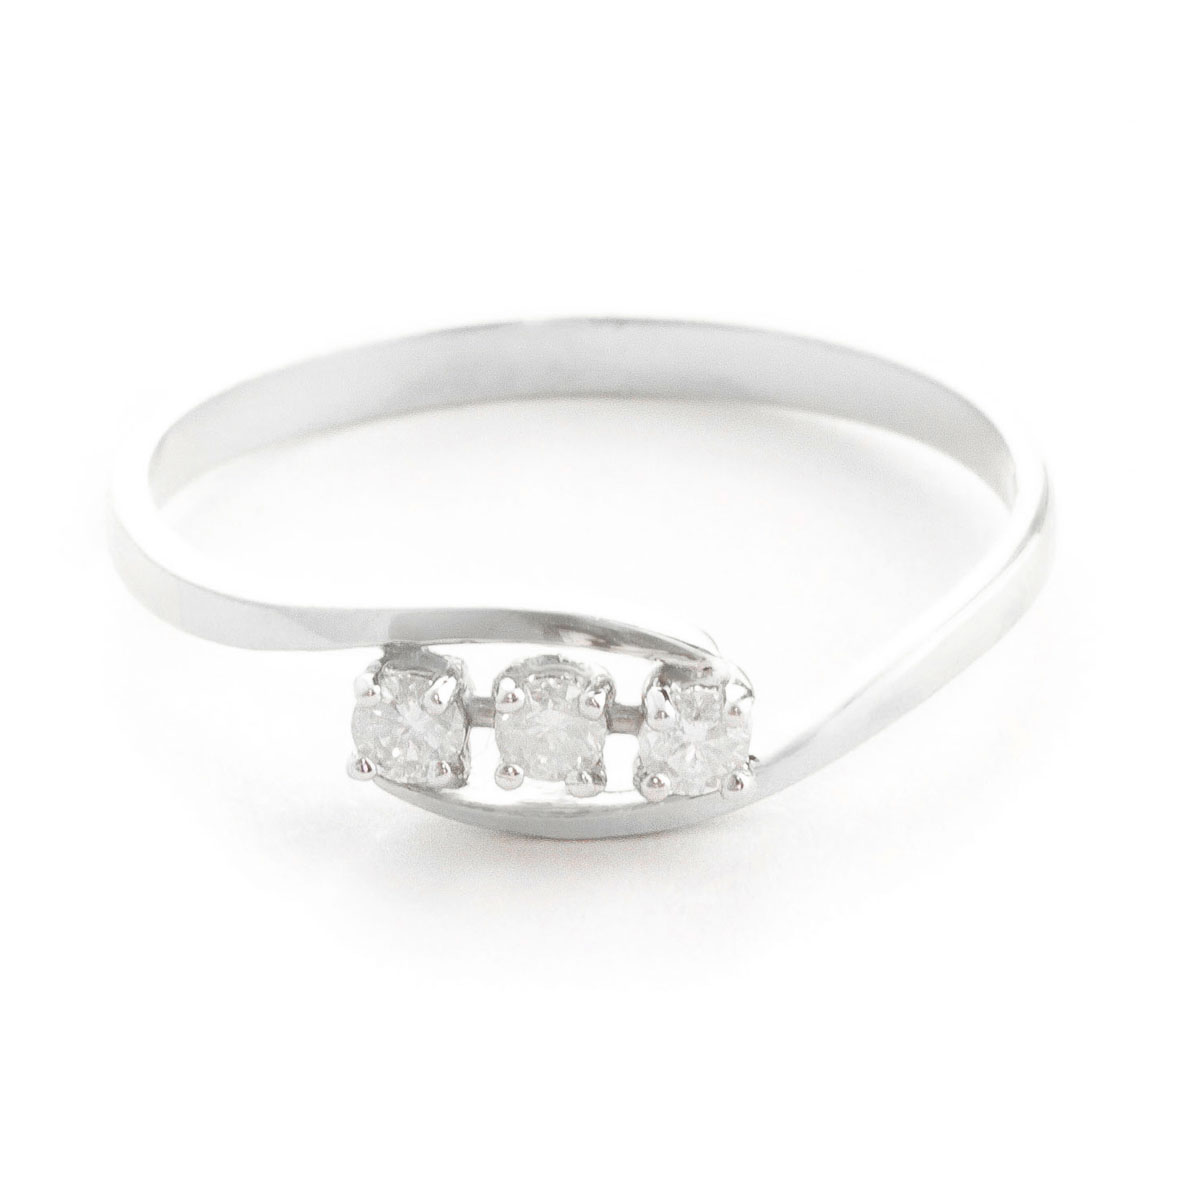 Round Cut Diamond Ring 0.15 ctw in 18ct White Gold